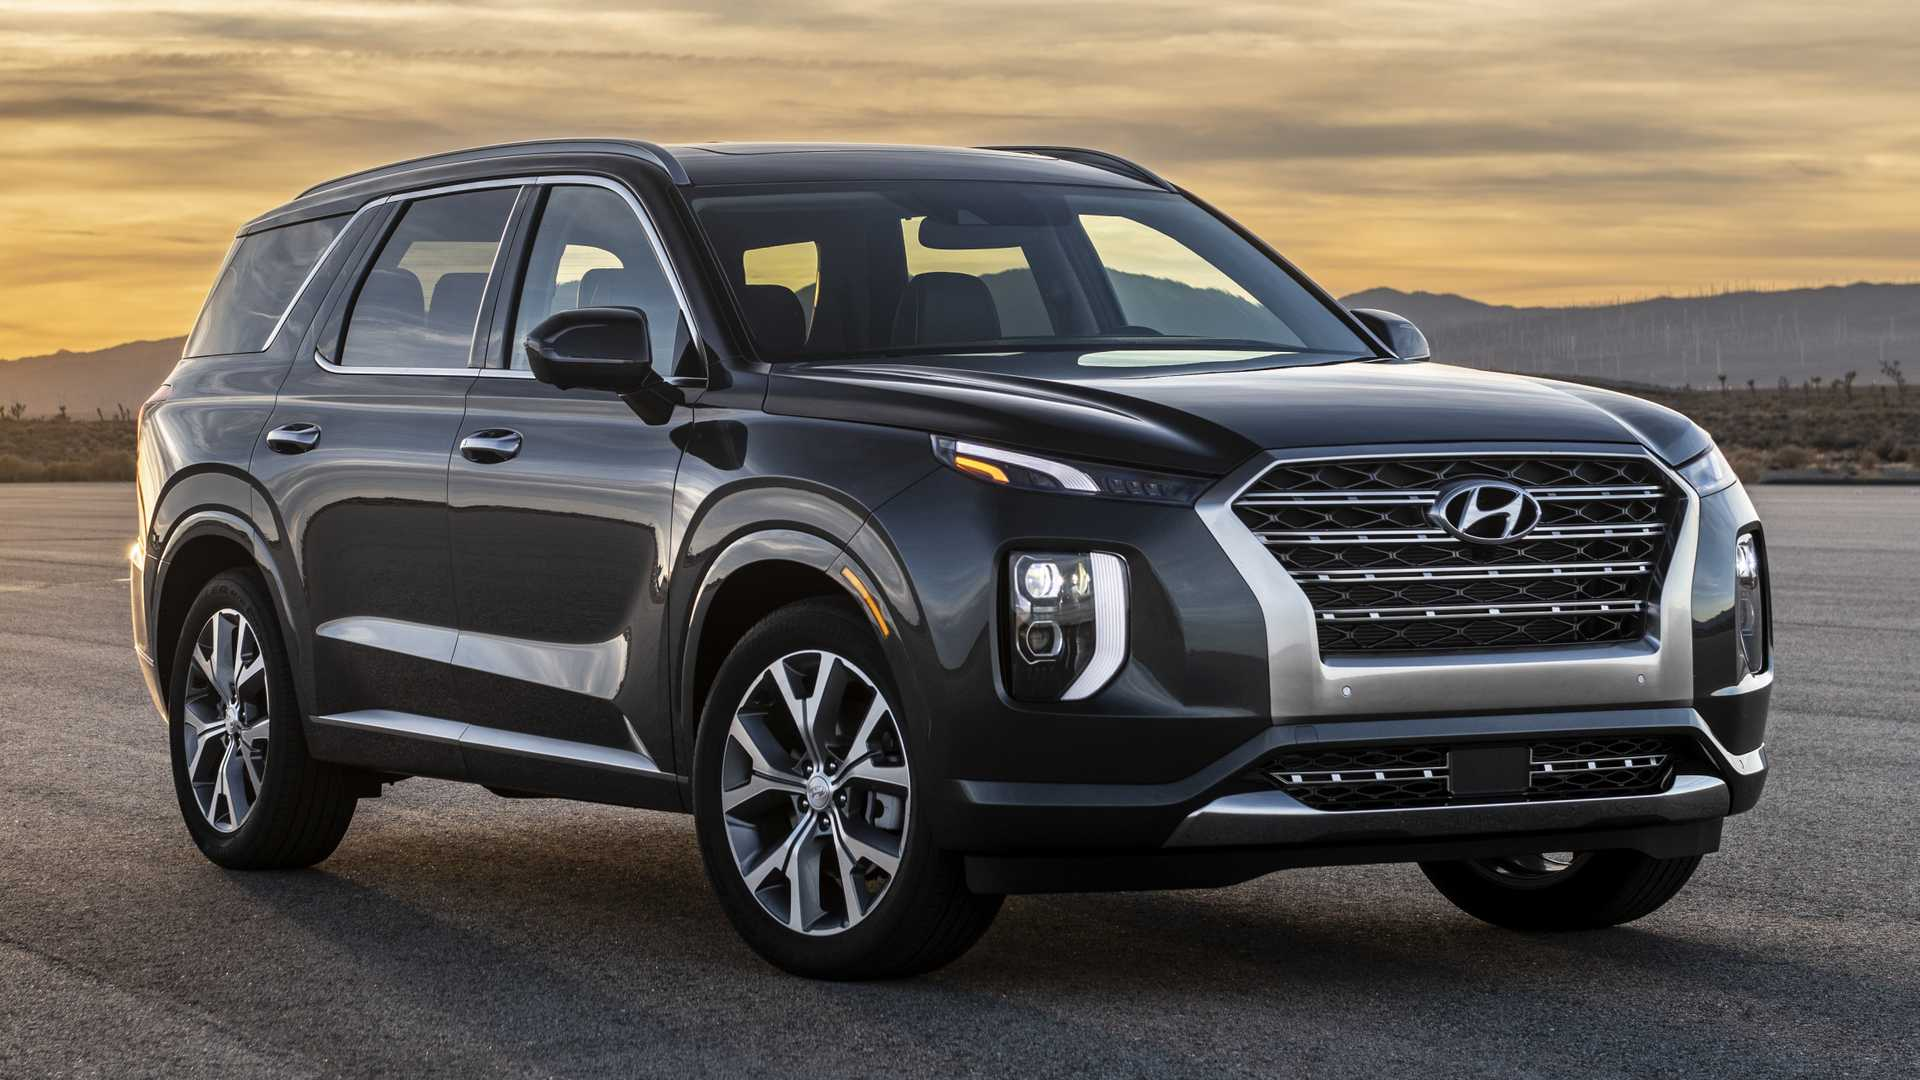 48 Best Review Hyundai Large Suv 2020 Photos with Hyundai Large Suv 2020